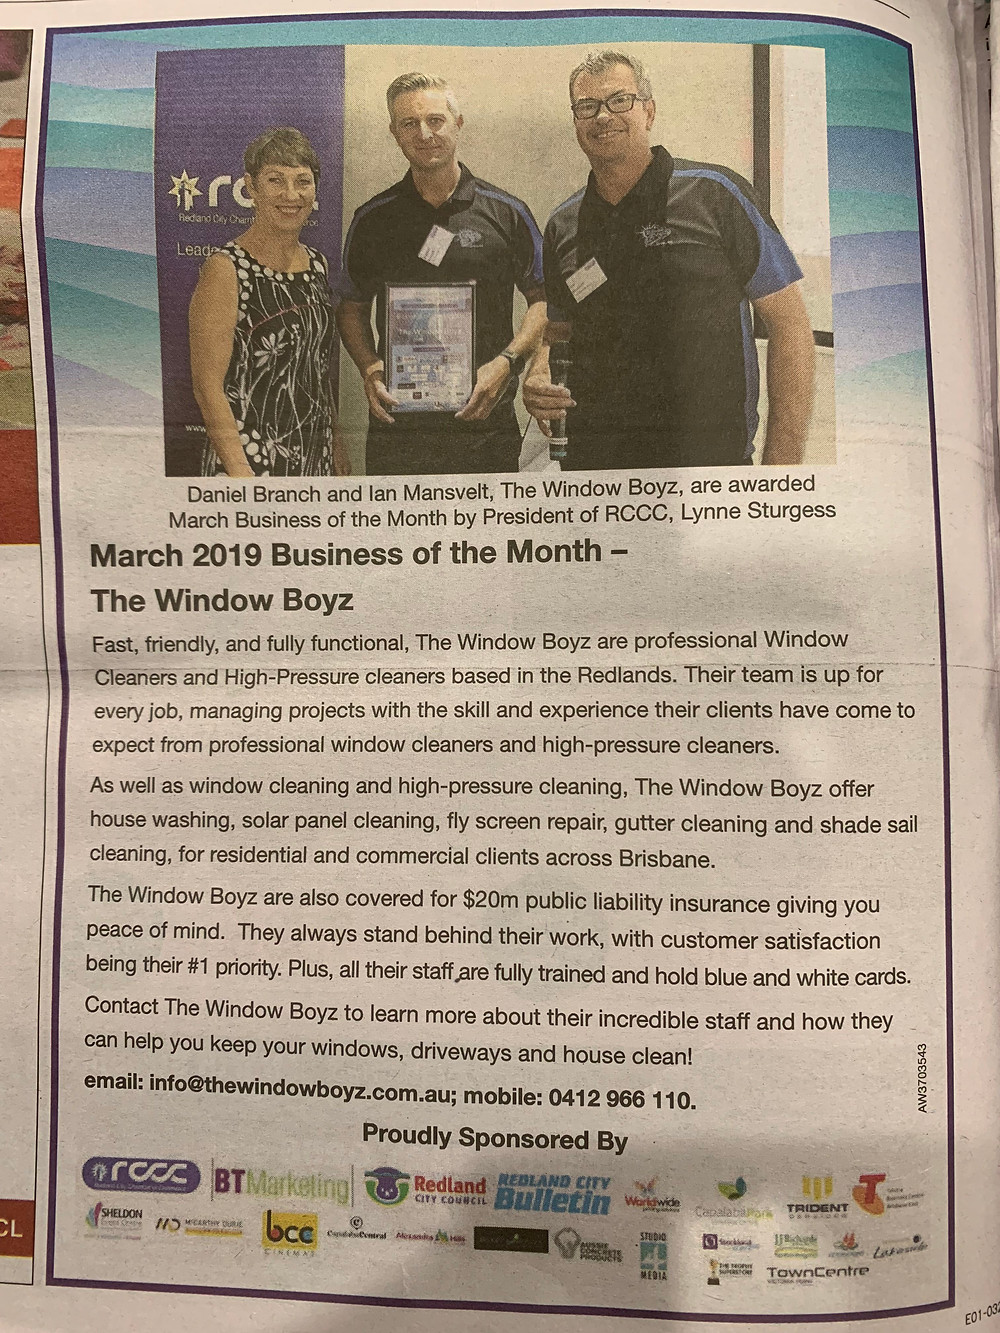 March 2019 RCCC Business of the Month